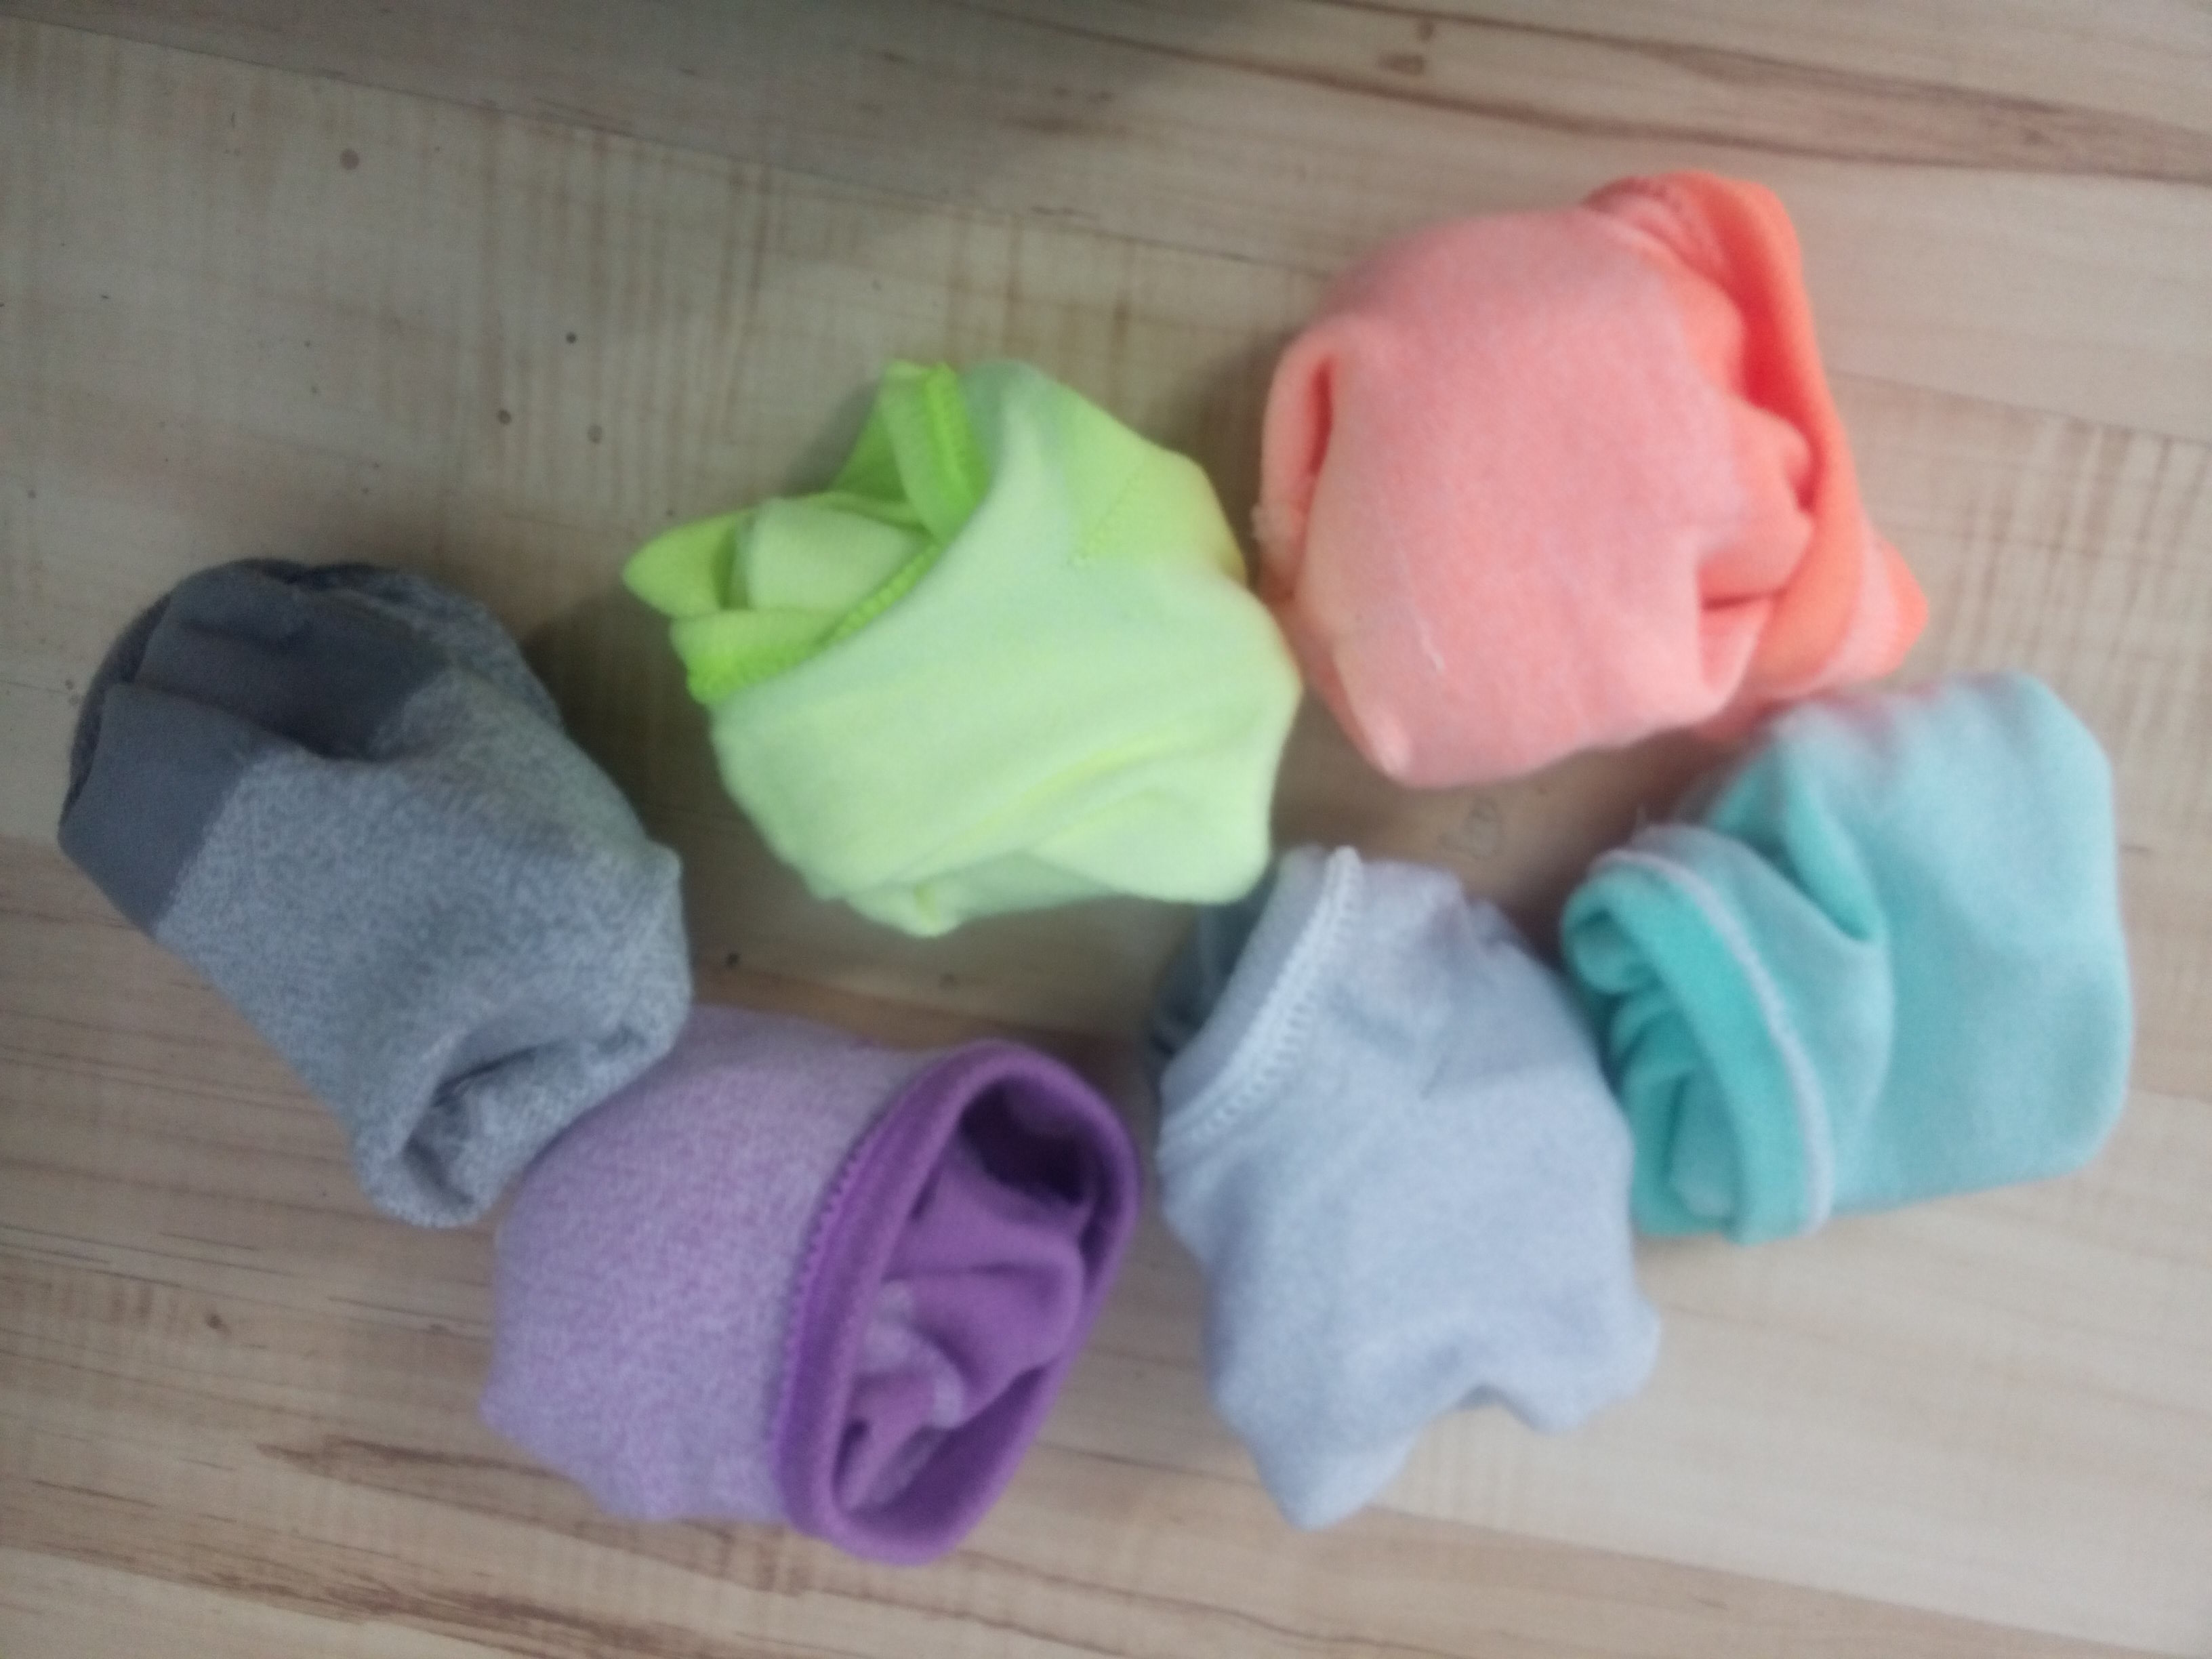 A mound of bright coloured ankle socks